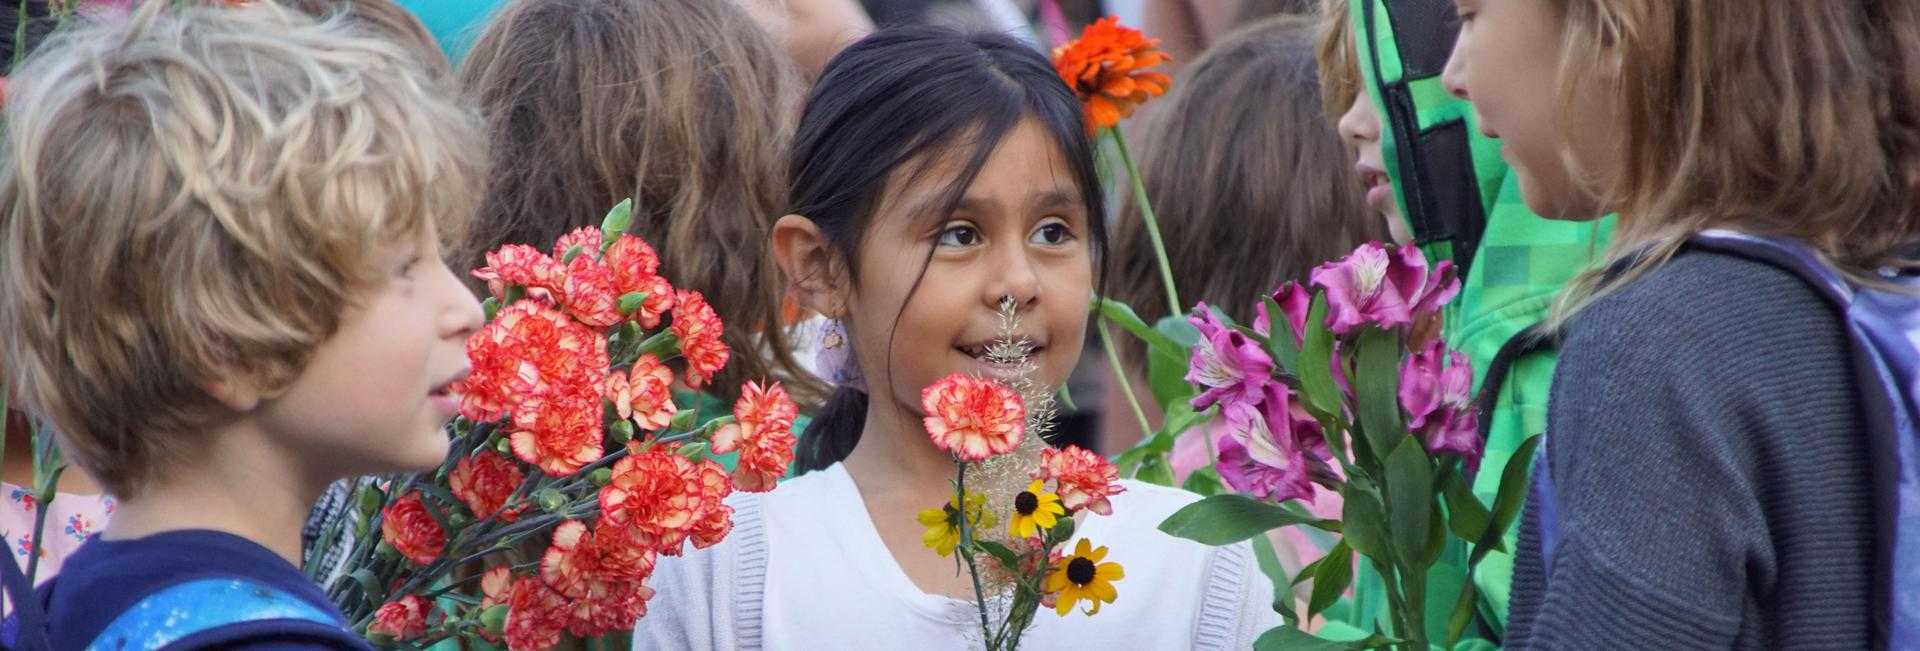 Child with flowers at Wisdom Day